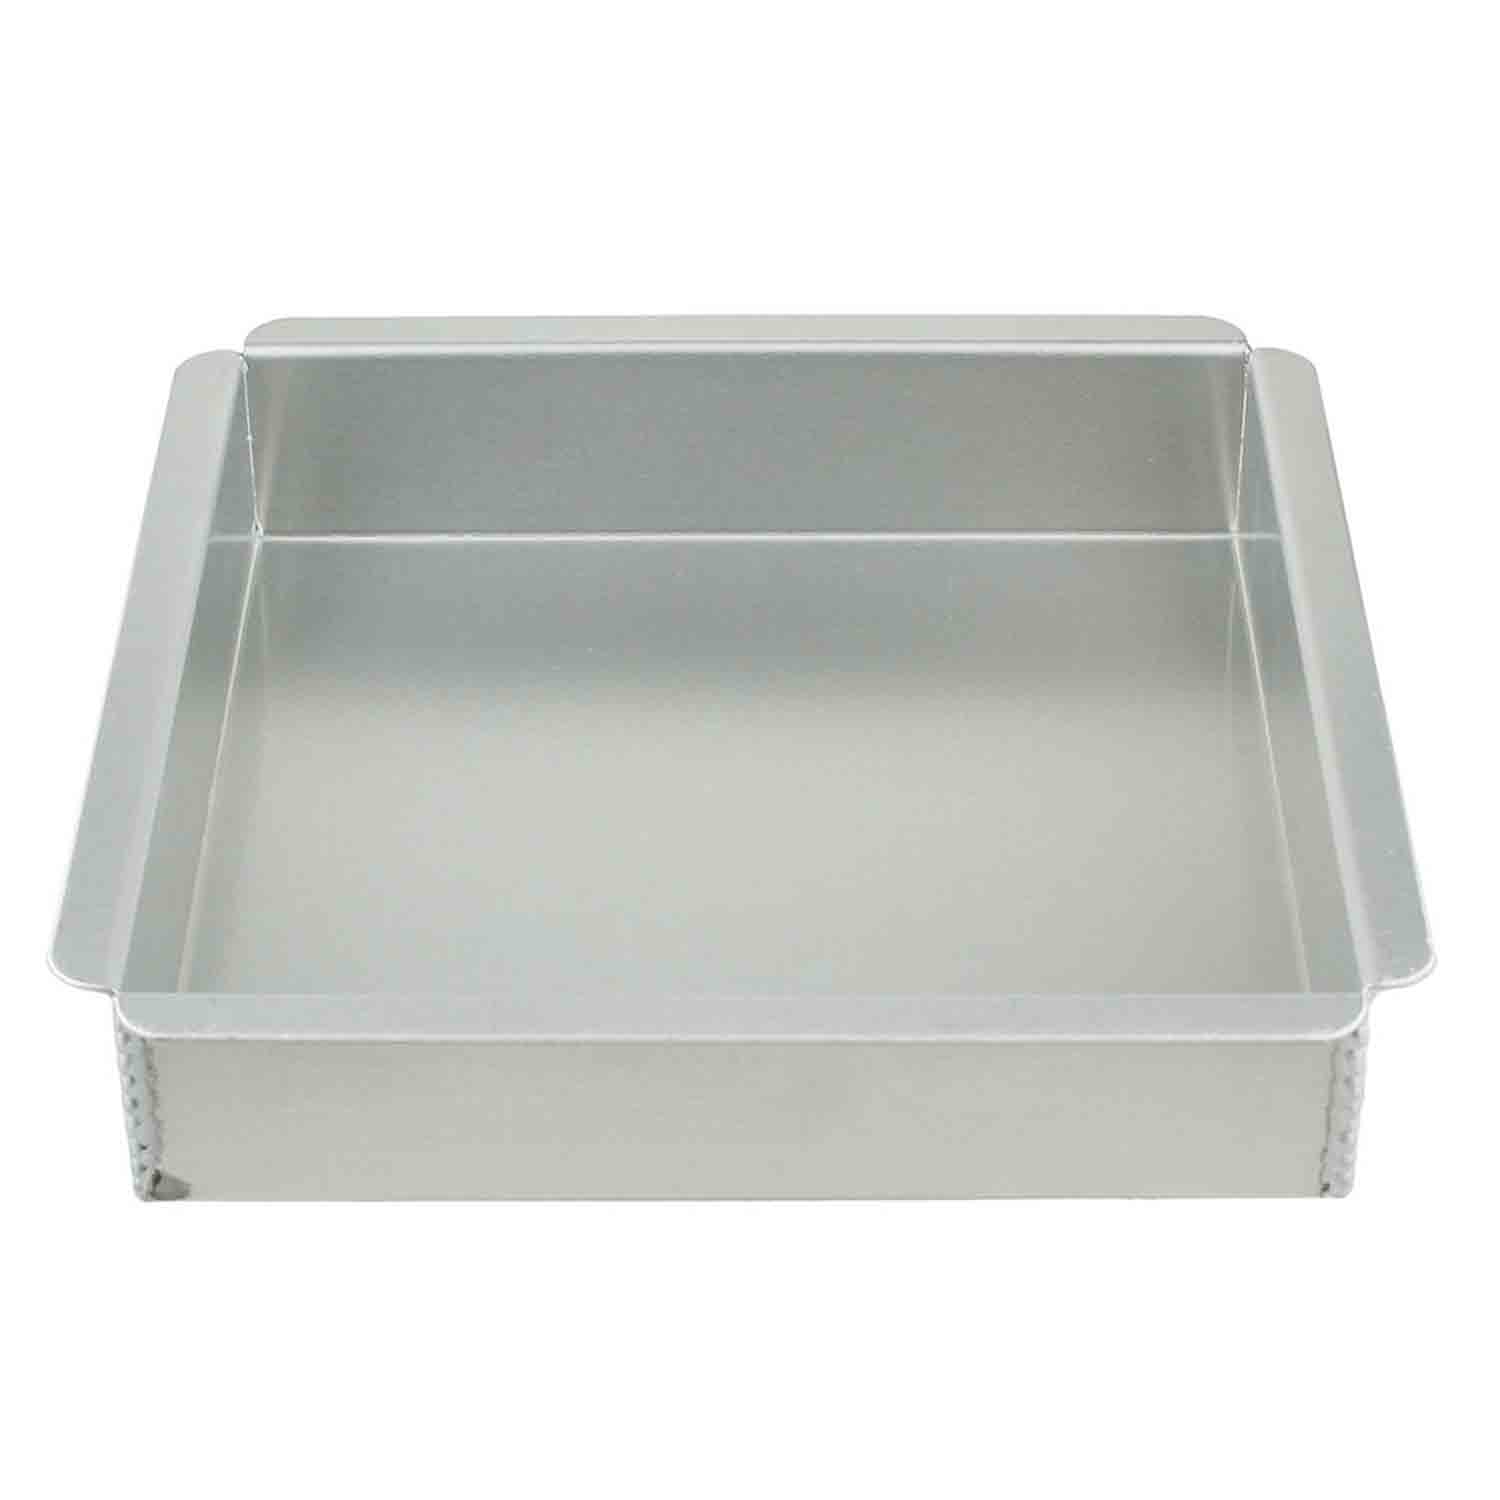 "9 x 2"" Magic Line Square Cake Pan"